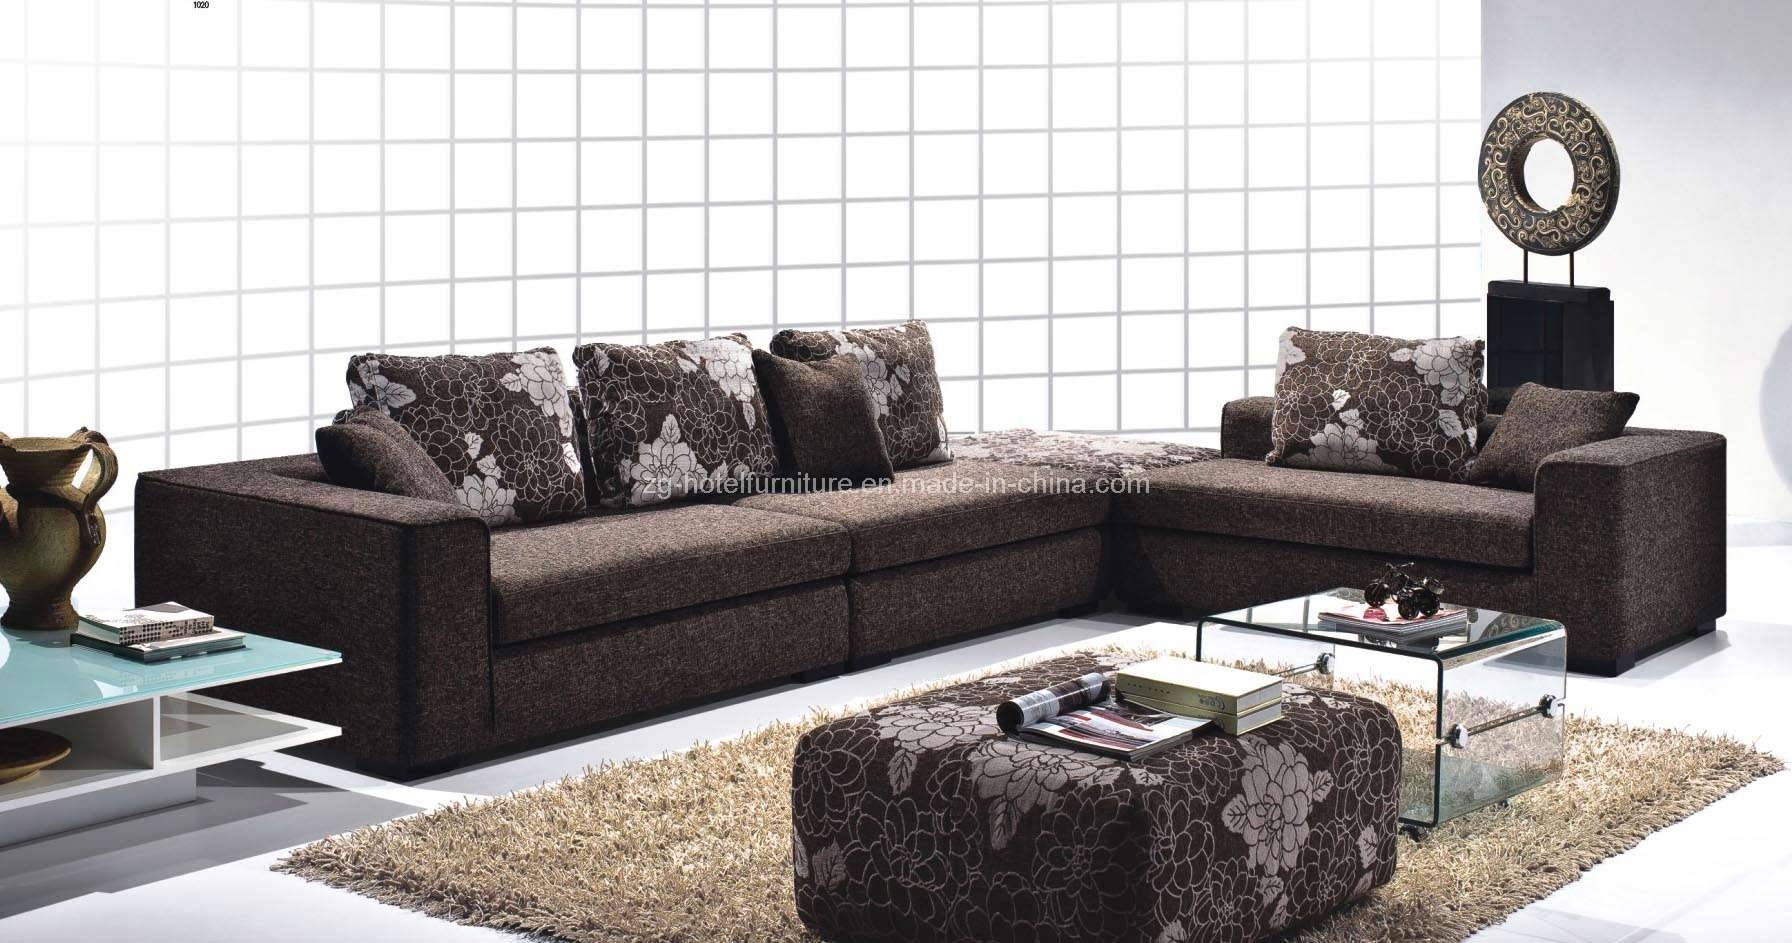 Living Room Sofa Living Room Design And Living Room Ideas with regard to Living Room Sofas (Image 21 of 30)